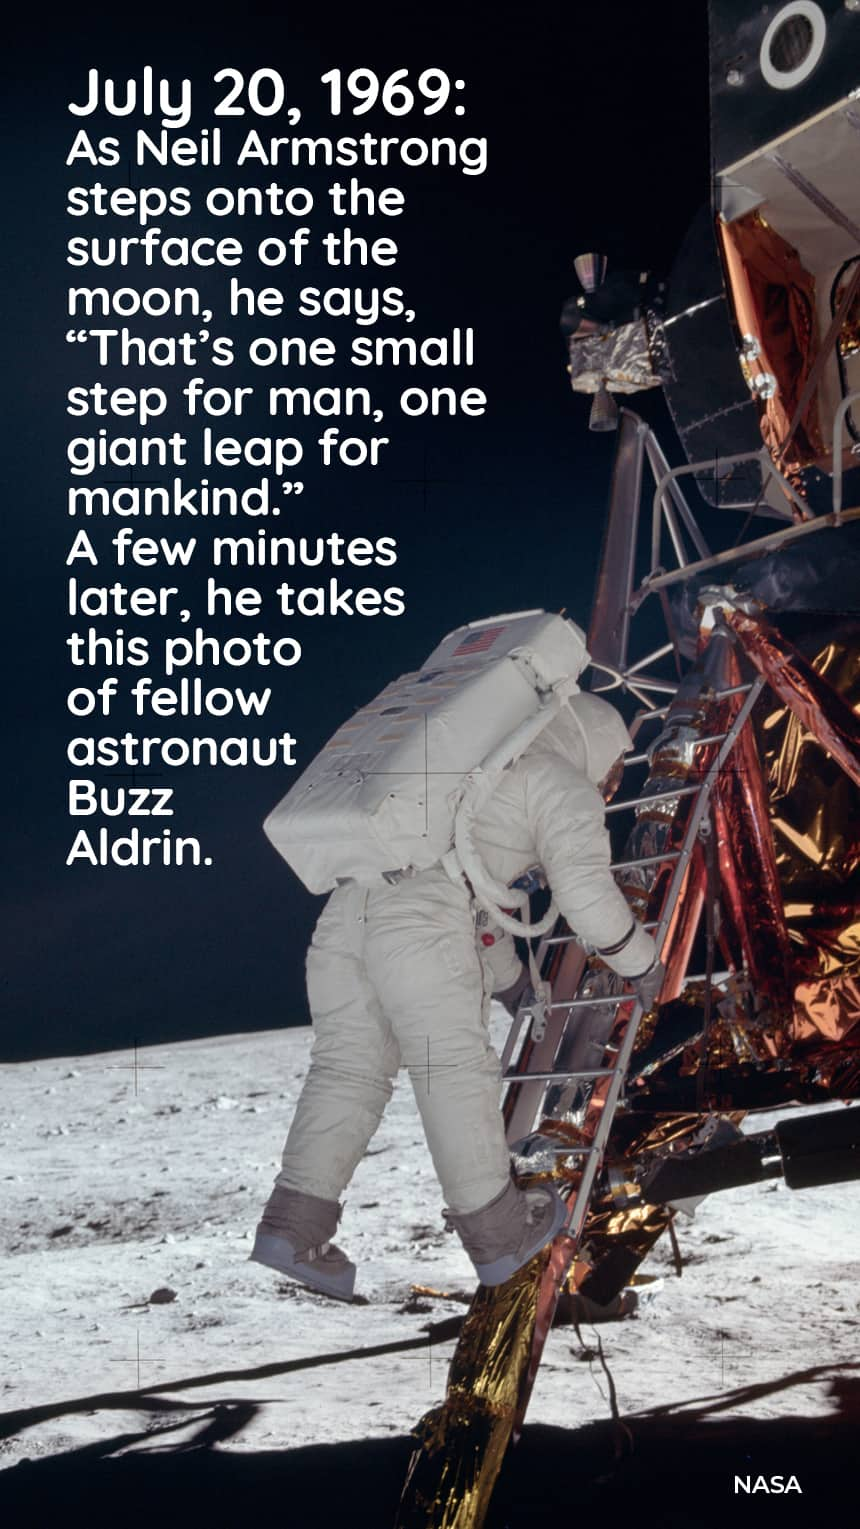 July 20, 1969: As Neil Armstrong steps onto the surface of the moon he says,